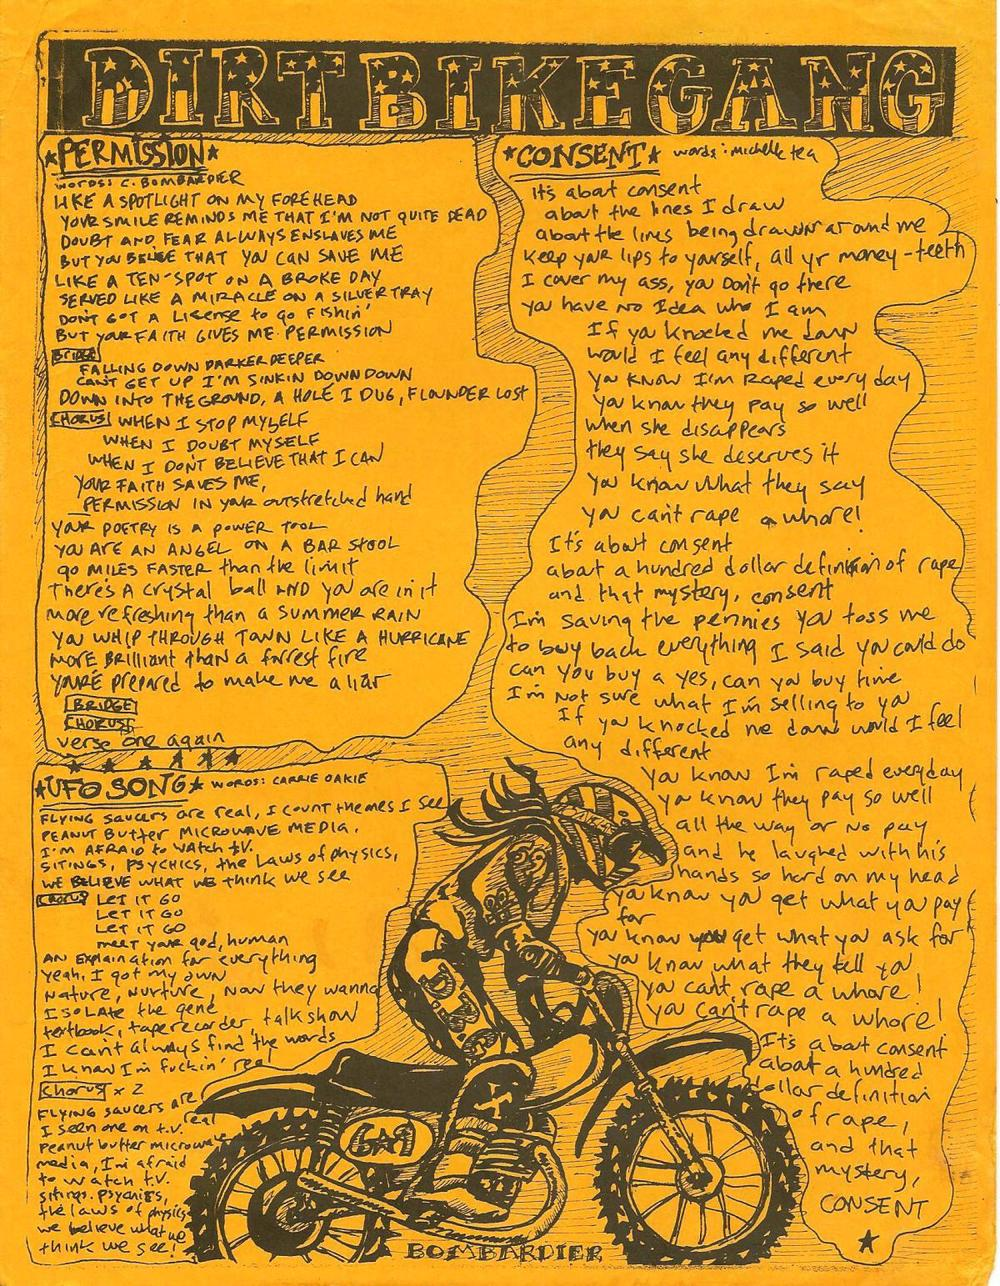 Lyric sheet 1_Cooper Lee Bombardier.jpg